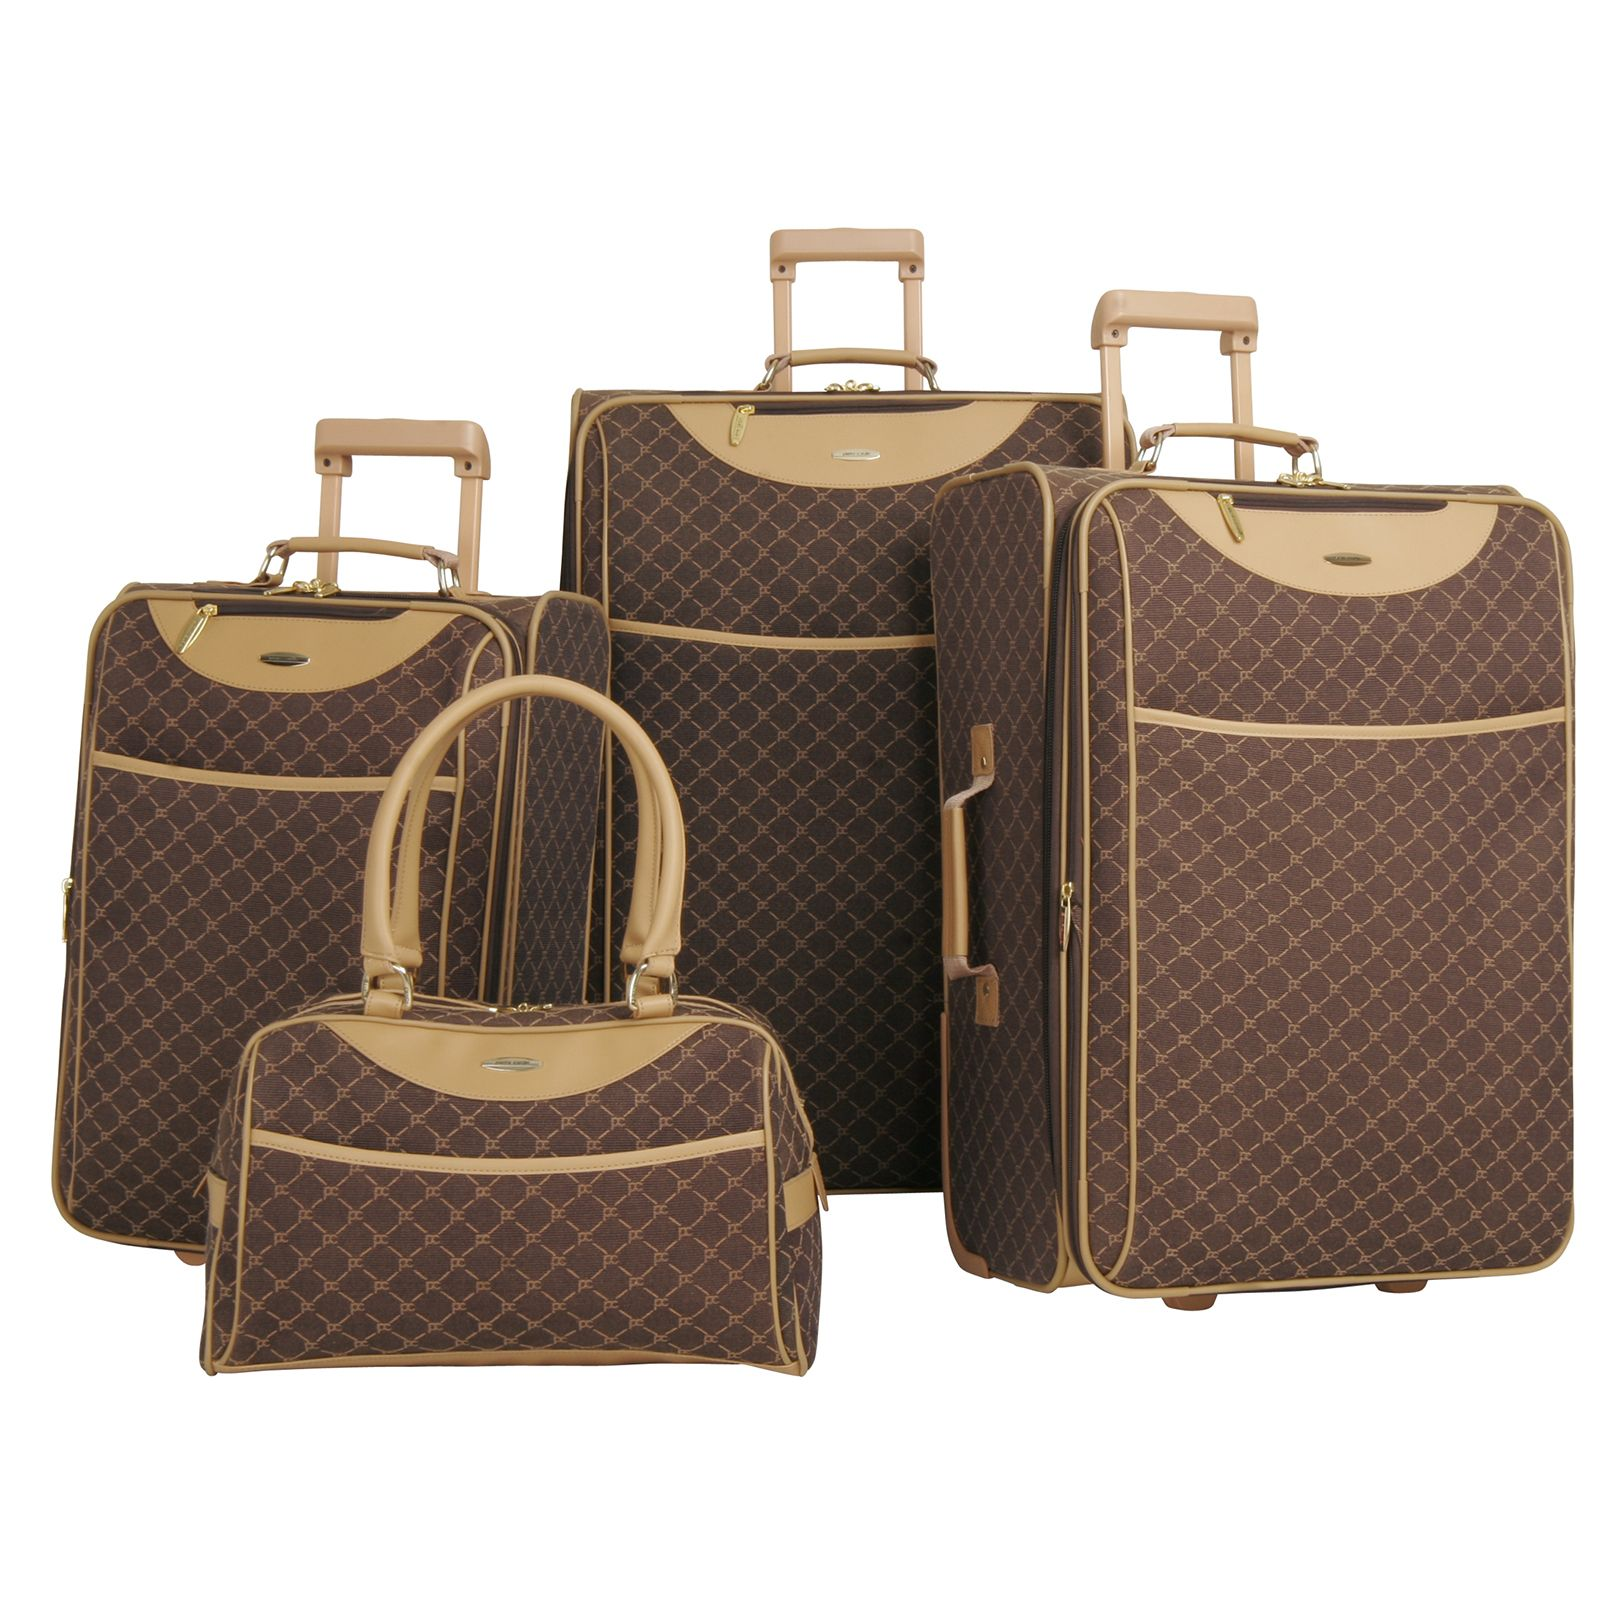 Pierre cardin signature collection travel in style pinterest pierre cardin signature collection biocorpaavc Choice Image